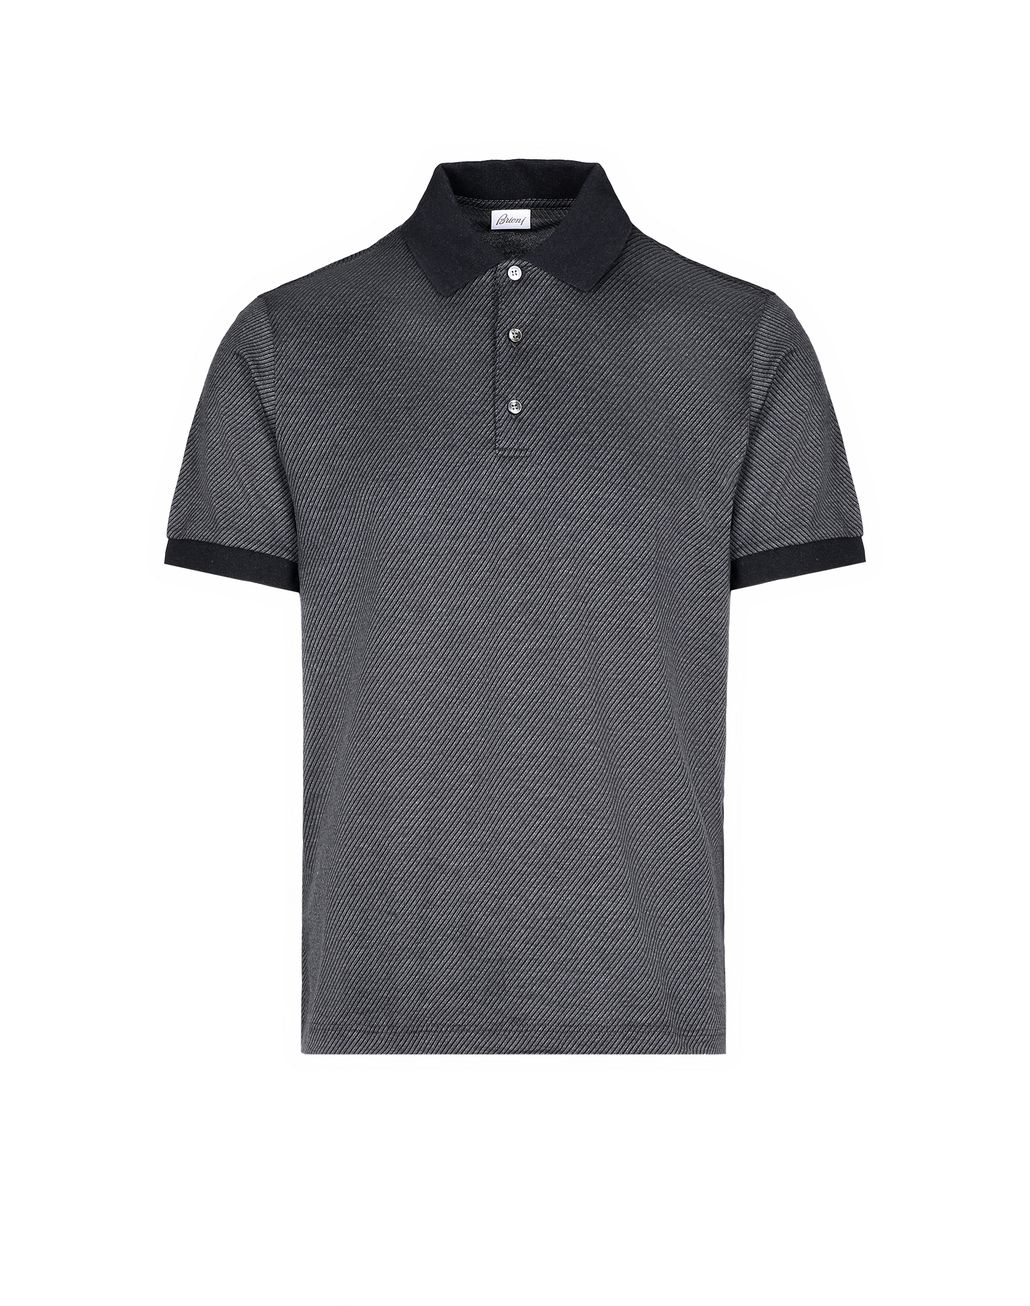 BRIONI Antrachite Jacquard Polo Shirt T-Shirts & Polos Man f